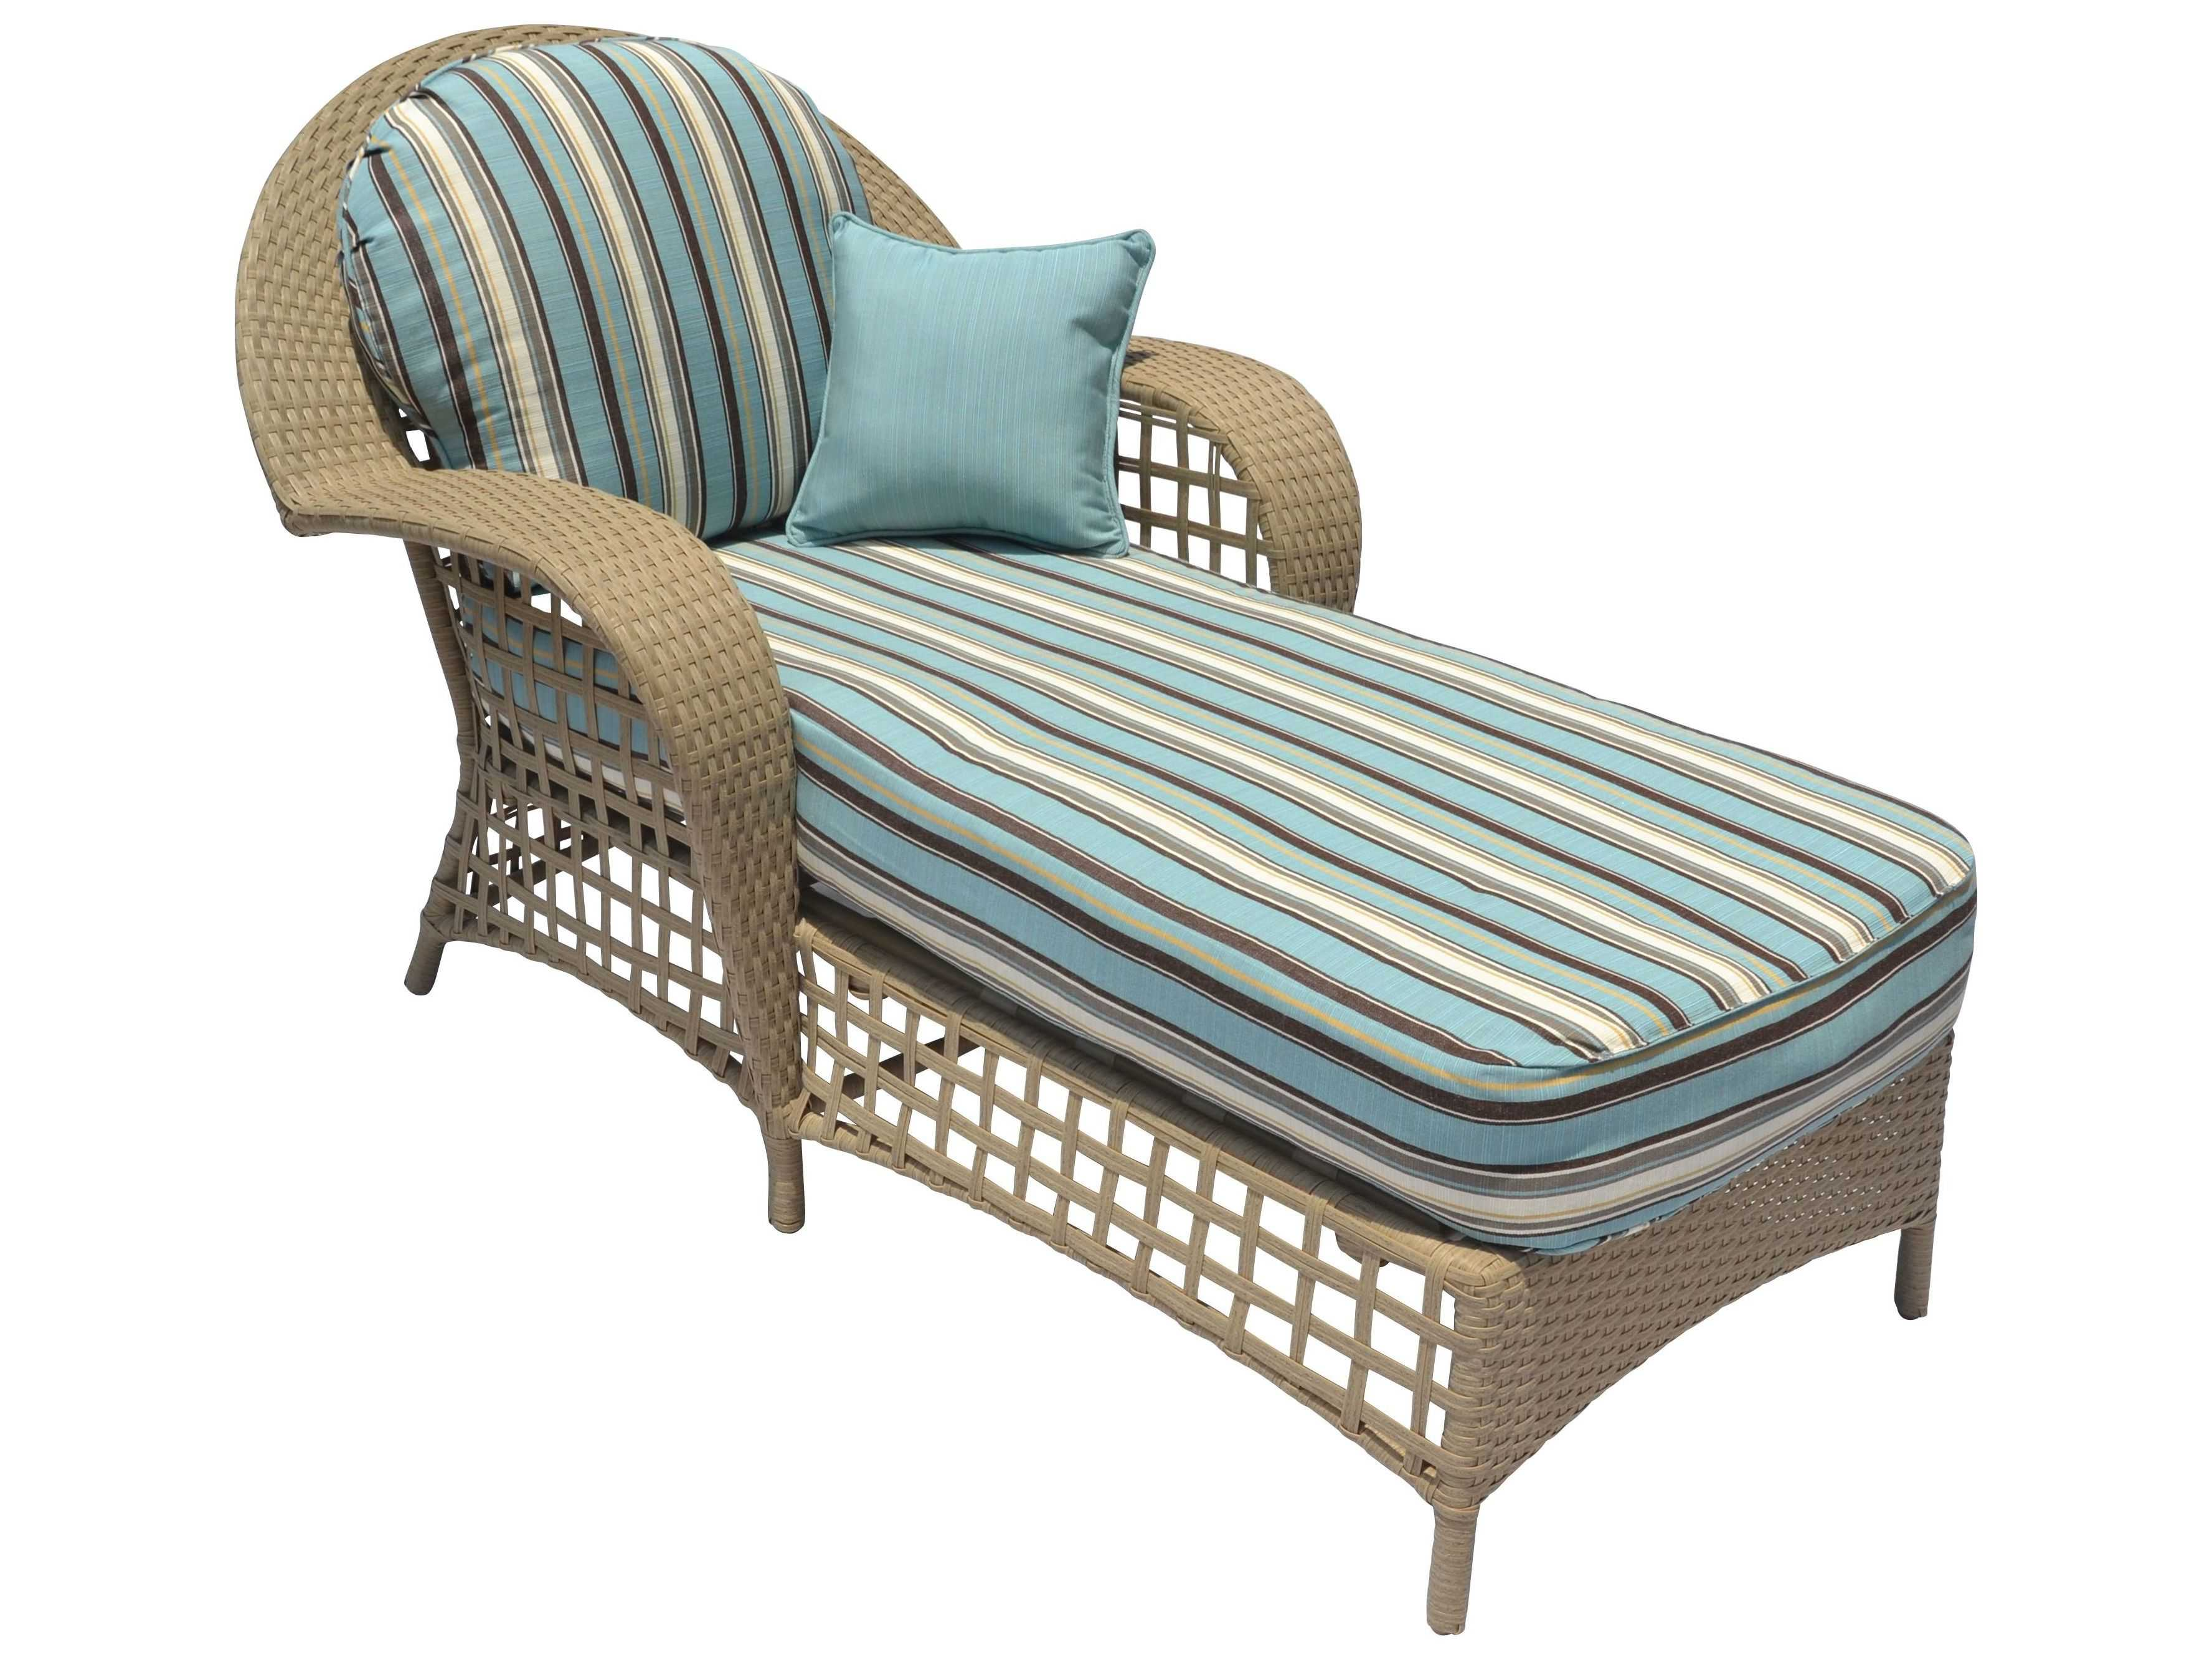 Suncoast sedona wicker chaise lounge su12933 for Bamboo chaise lounge